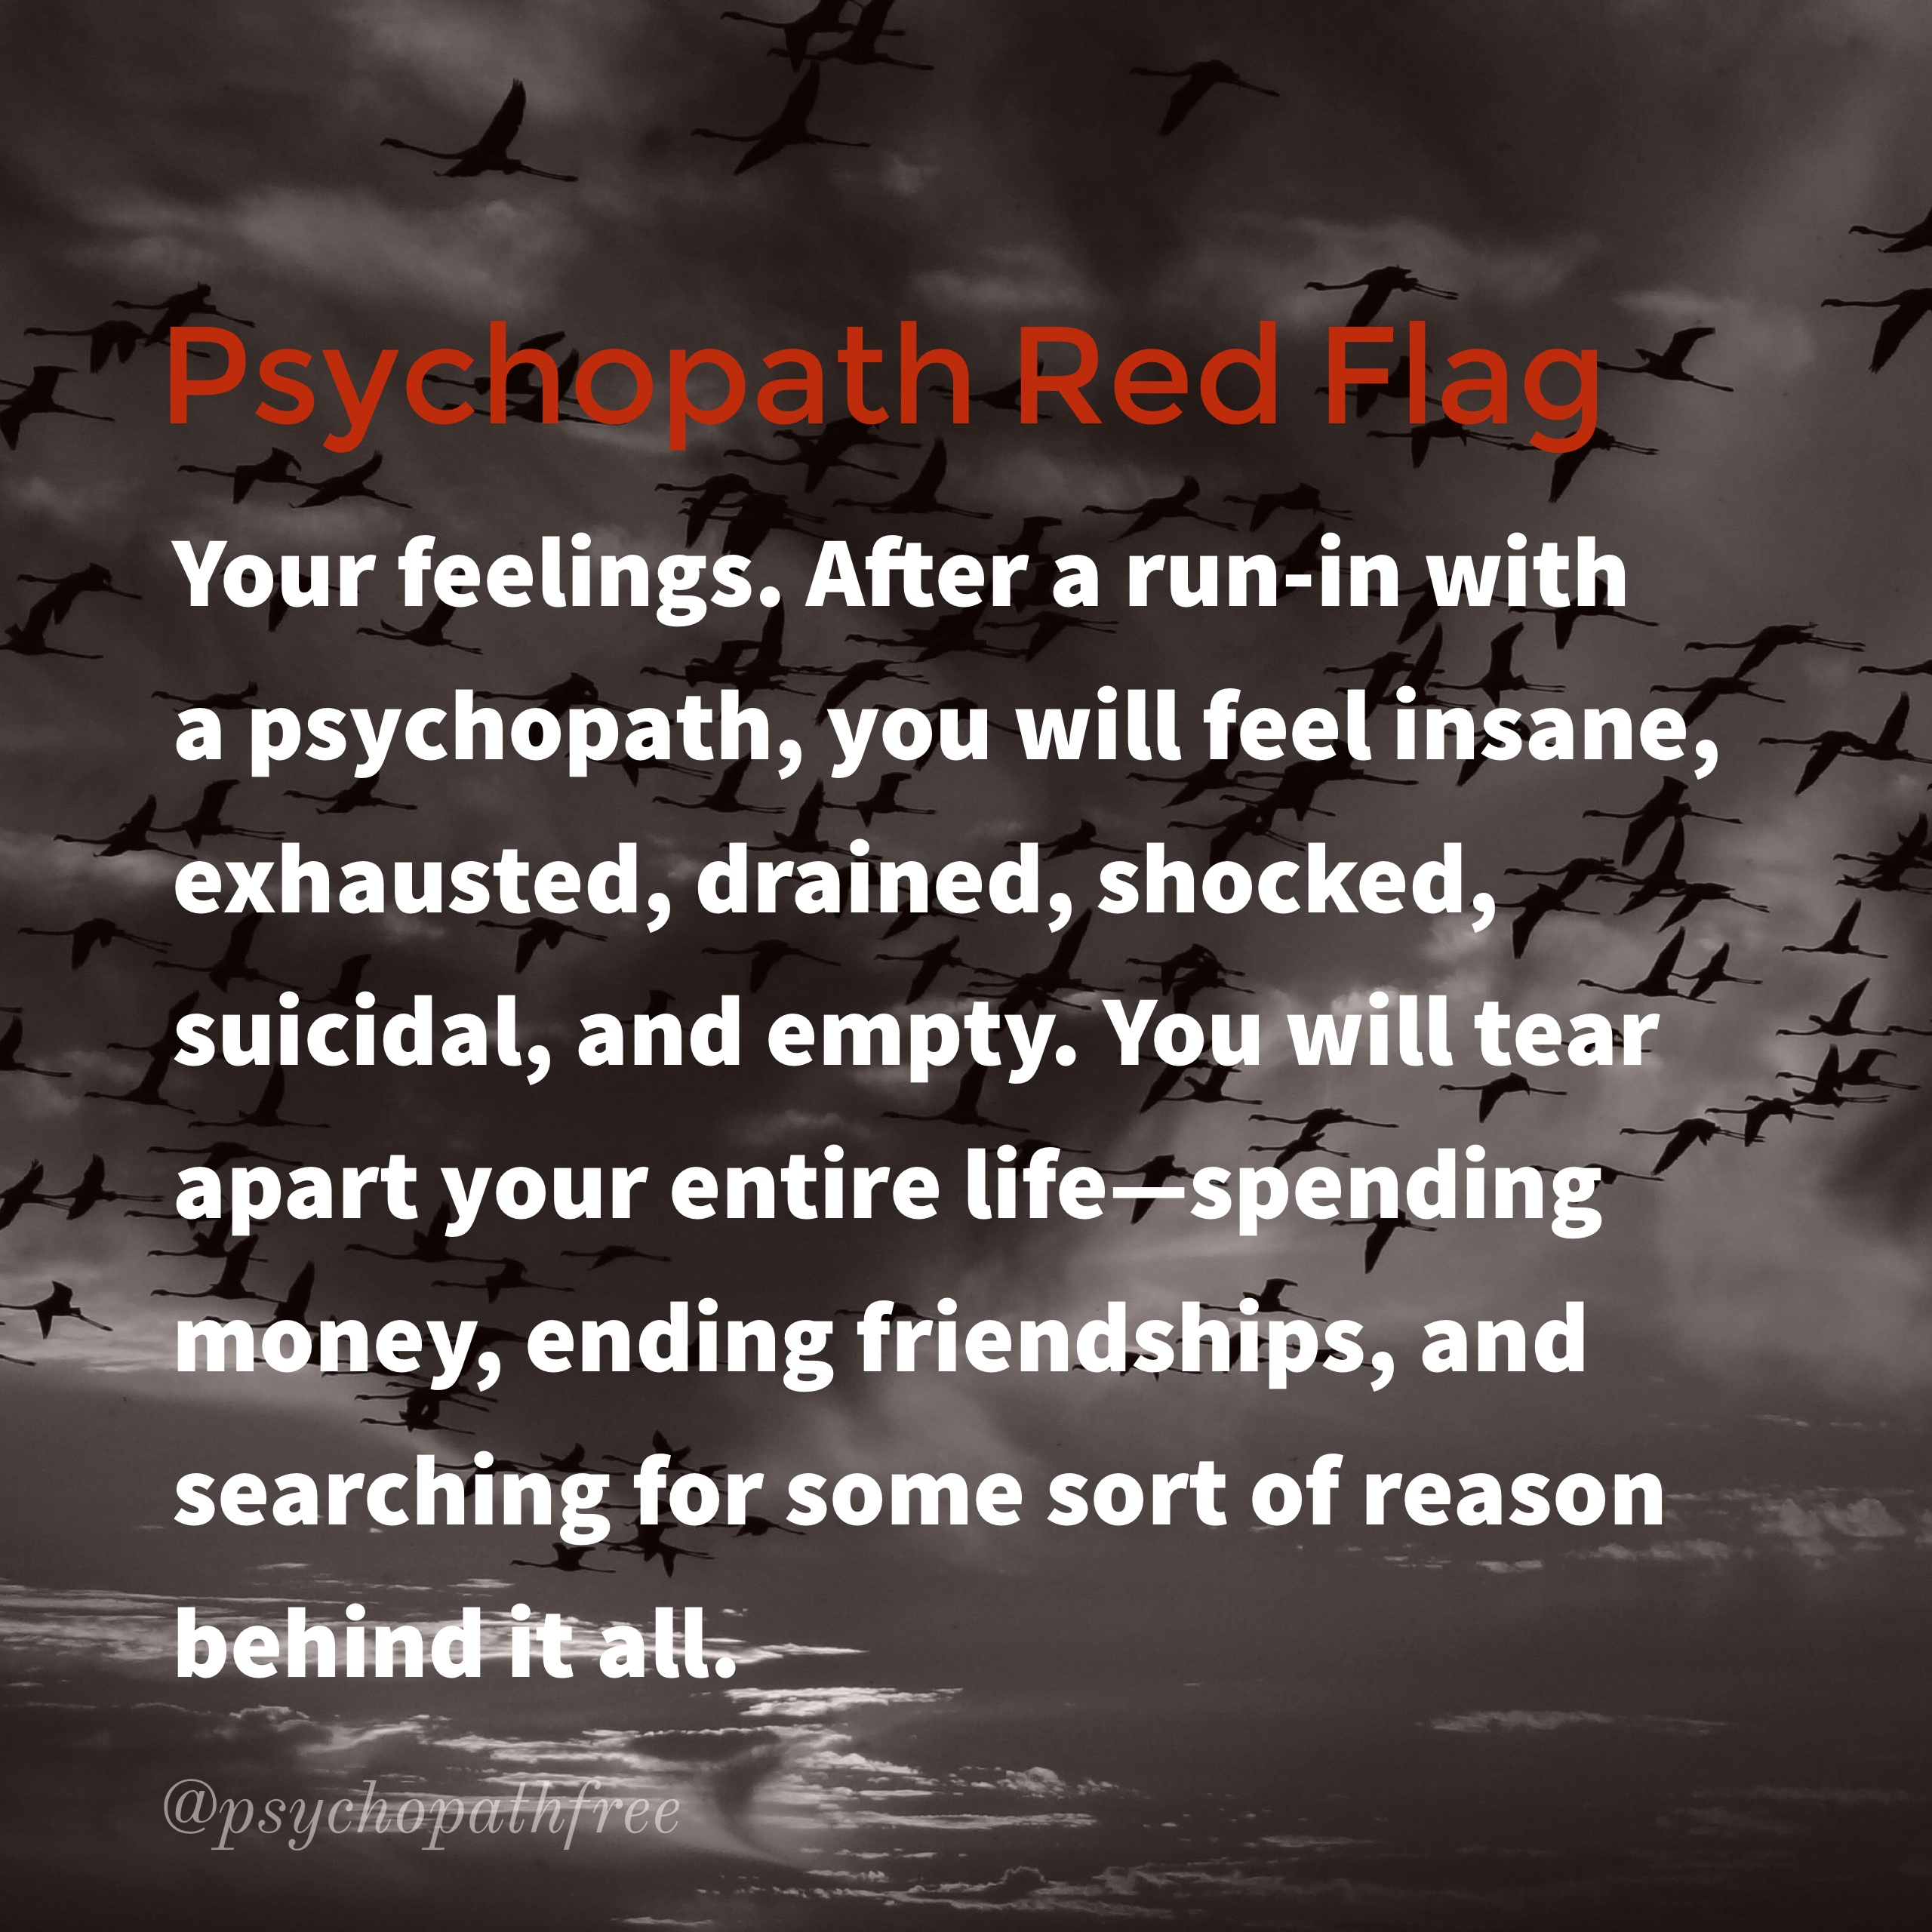 Narcissist and psychopath